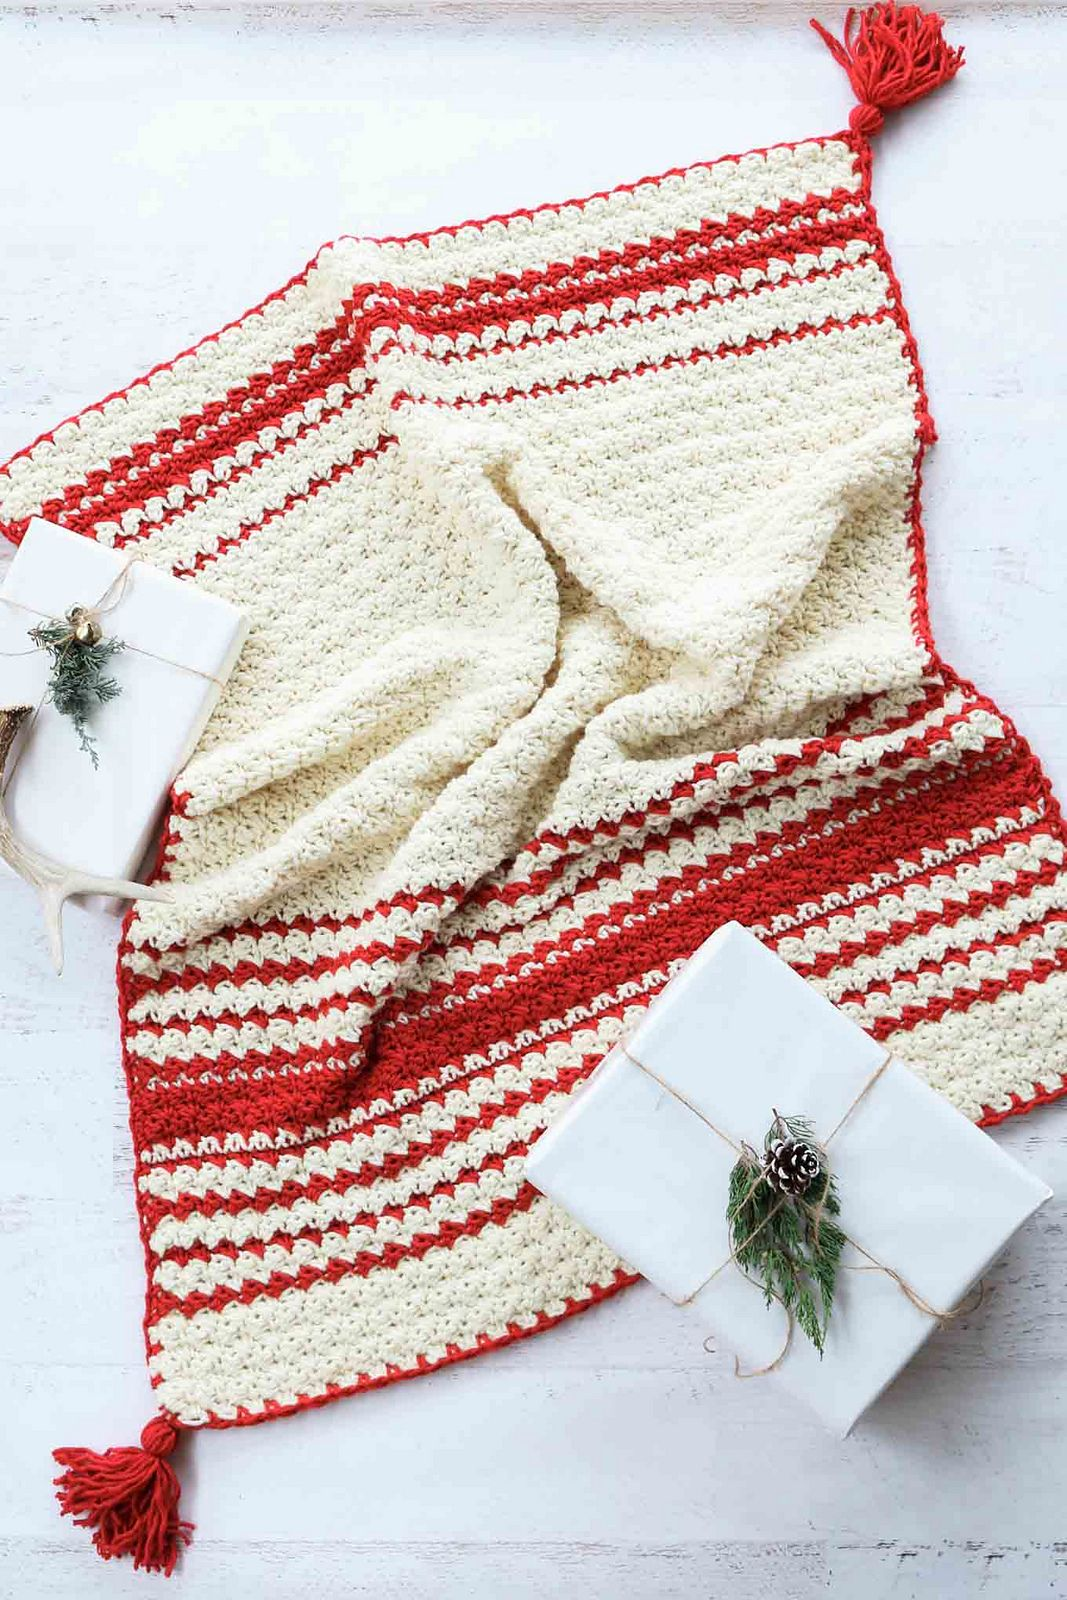 Hygge holiday throw free pattern by jess coppom lapghan or baby hygge holiday throw free pattern by jess coppom lapghan or baby blanket size 37 x 39 easily adjustable 1350 yds lion brand bulky weight yarn bankloansurffo Gallery